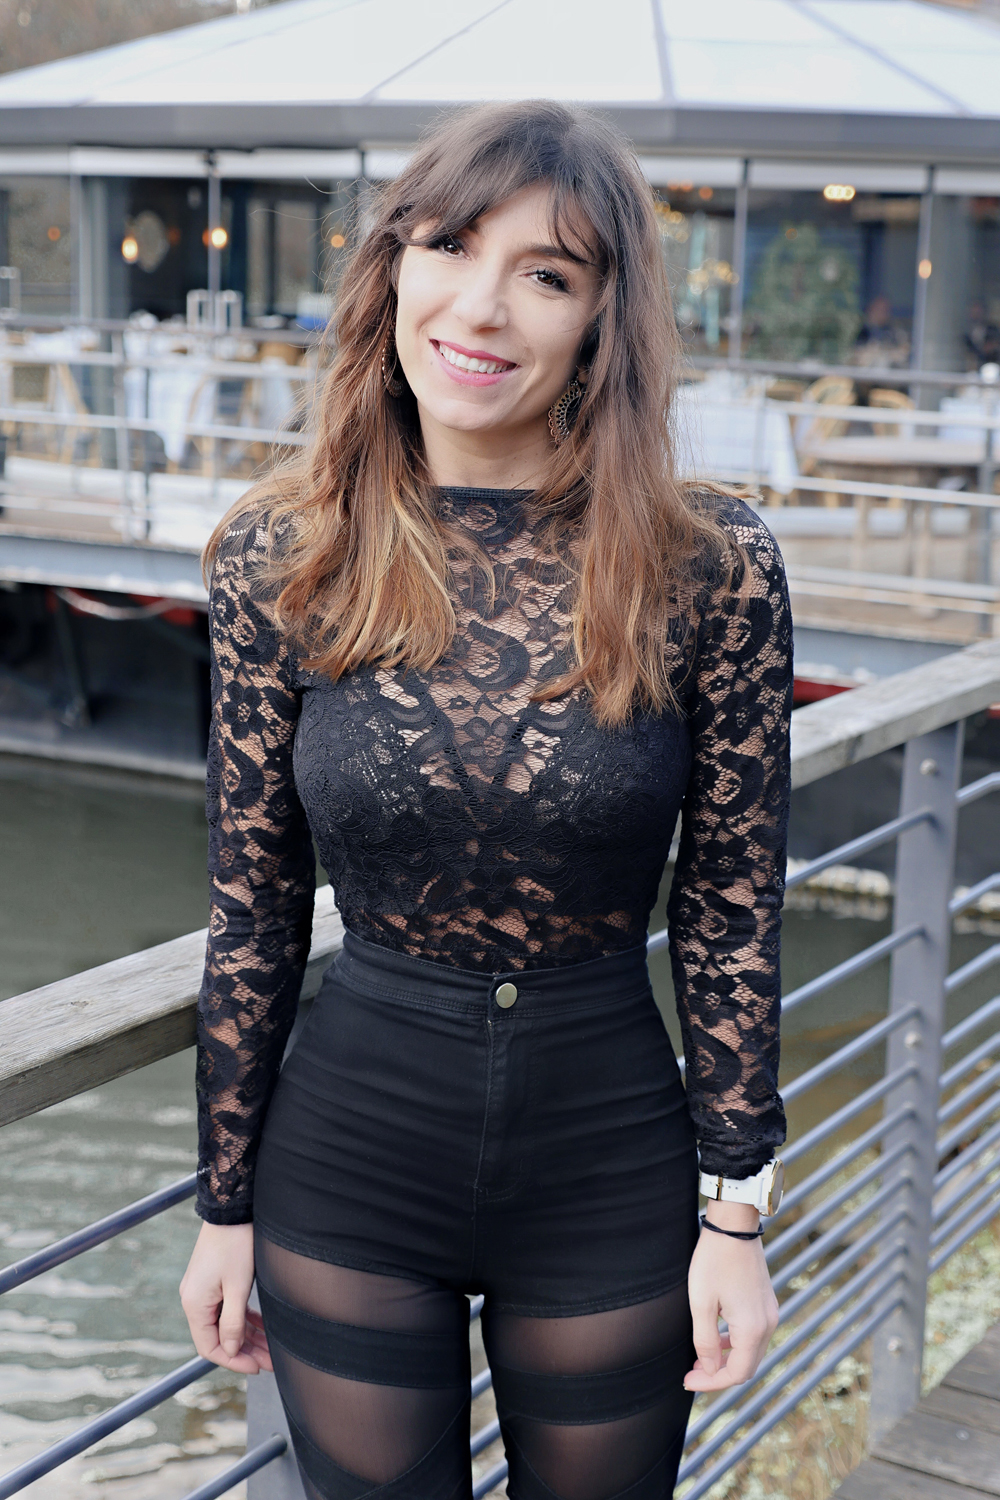 marieluvpink-blog-mode-rivers-cafe-issy-les-moulineaux-3